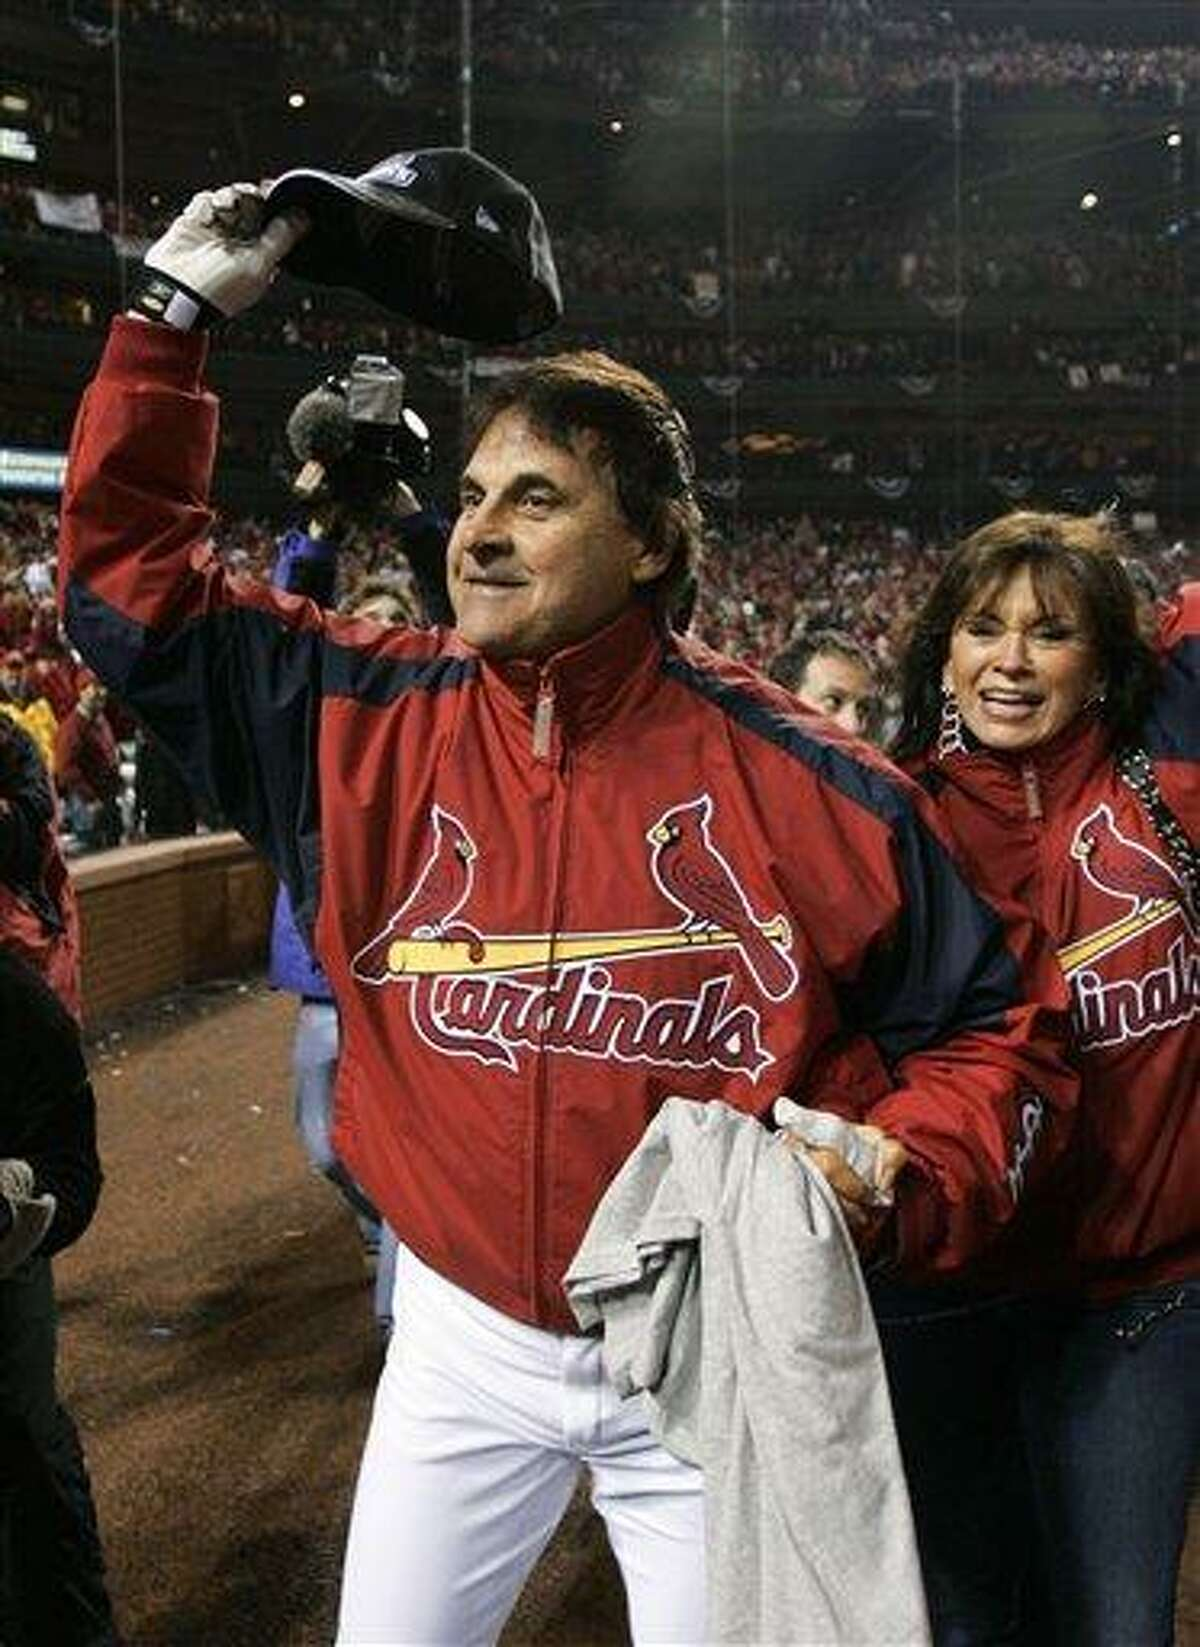 FILE - In this Oct. 27, 2006 file photo, St. Louis Cardinals manager Tony La Russa waves to fans with his wife, Elaine, after the Cardinals won the World Series with a 4-2, Game 5 win over the Detroit Tigers, in St. Louis. La Russa retired as manager of the St. Louis Cardinals on Monday, Oct. 31, 2011, three days after winning a dramatic, seven-game World Series against the Texas Rangers. (AP Photo/Morry Gash, File)